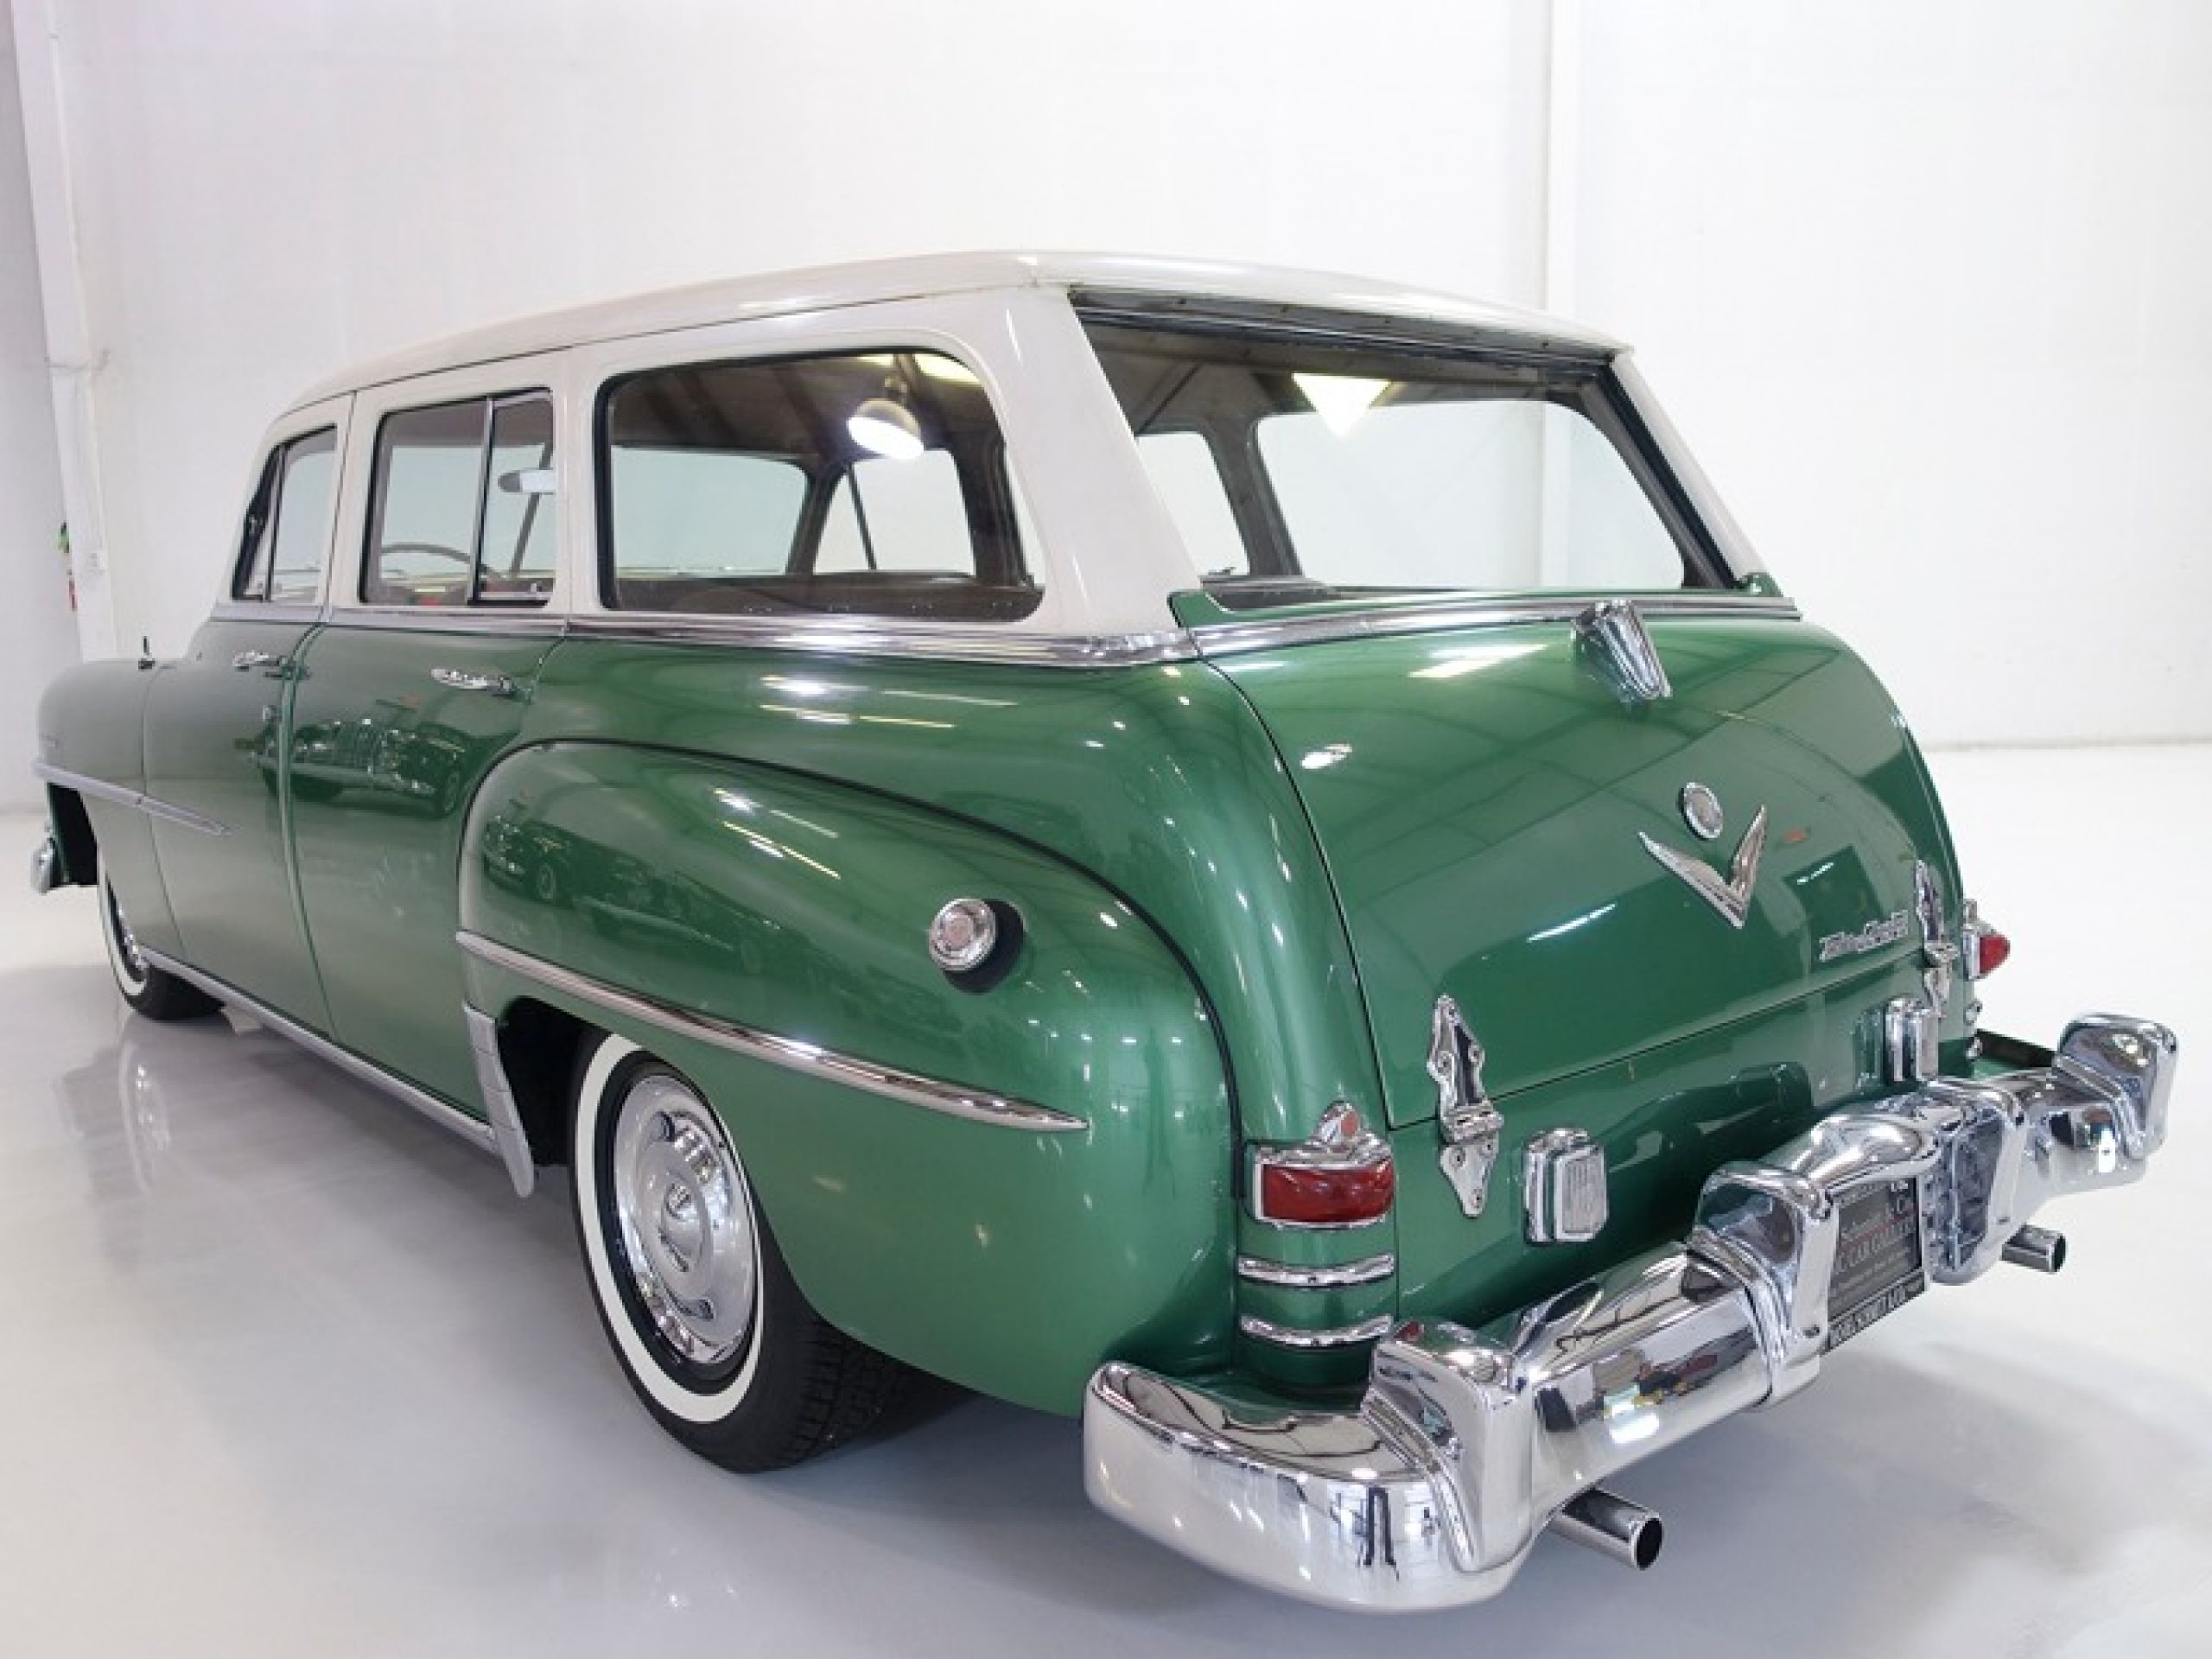 1952 Chrysler Saratoga 8 Town & Country Wagon